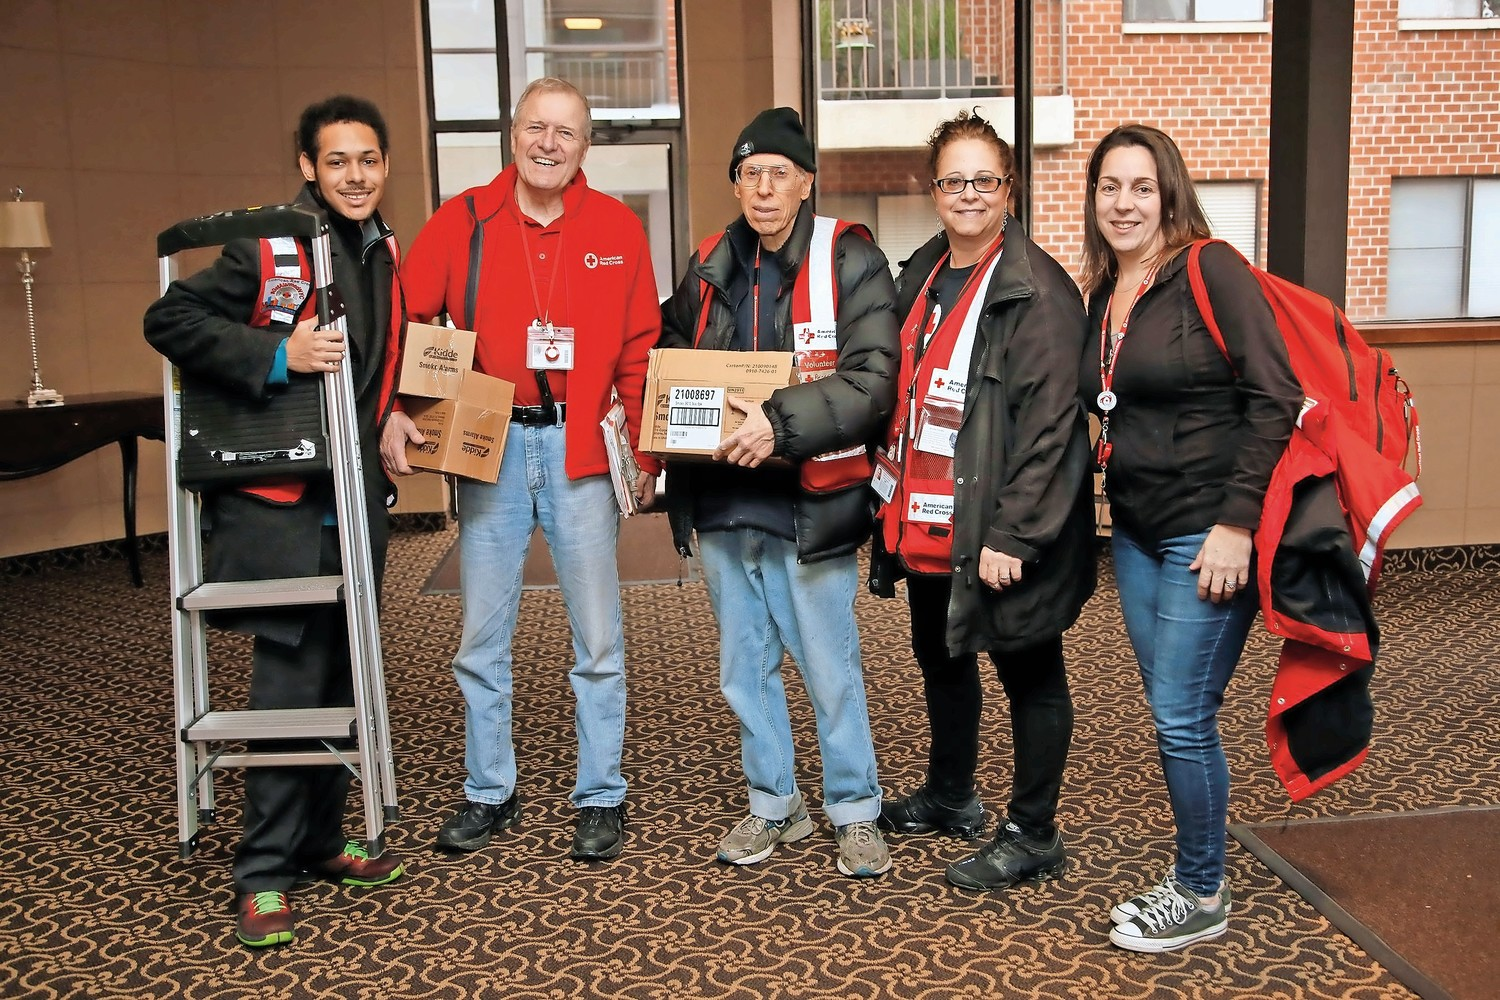 Dominic Jenkins, left, Paul Nulty, Peter King, Karen Serani and Lori-Ann Pizzarelli, helped install smoke alarms on Feb. 24 as volunteers for the American Red Cross.